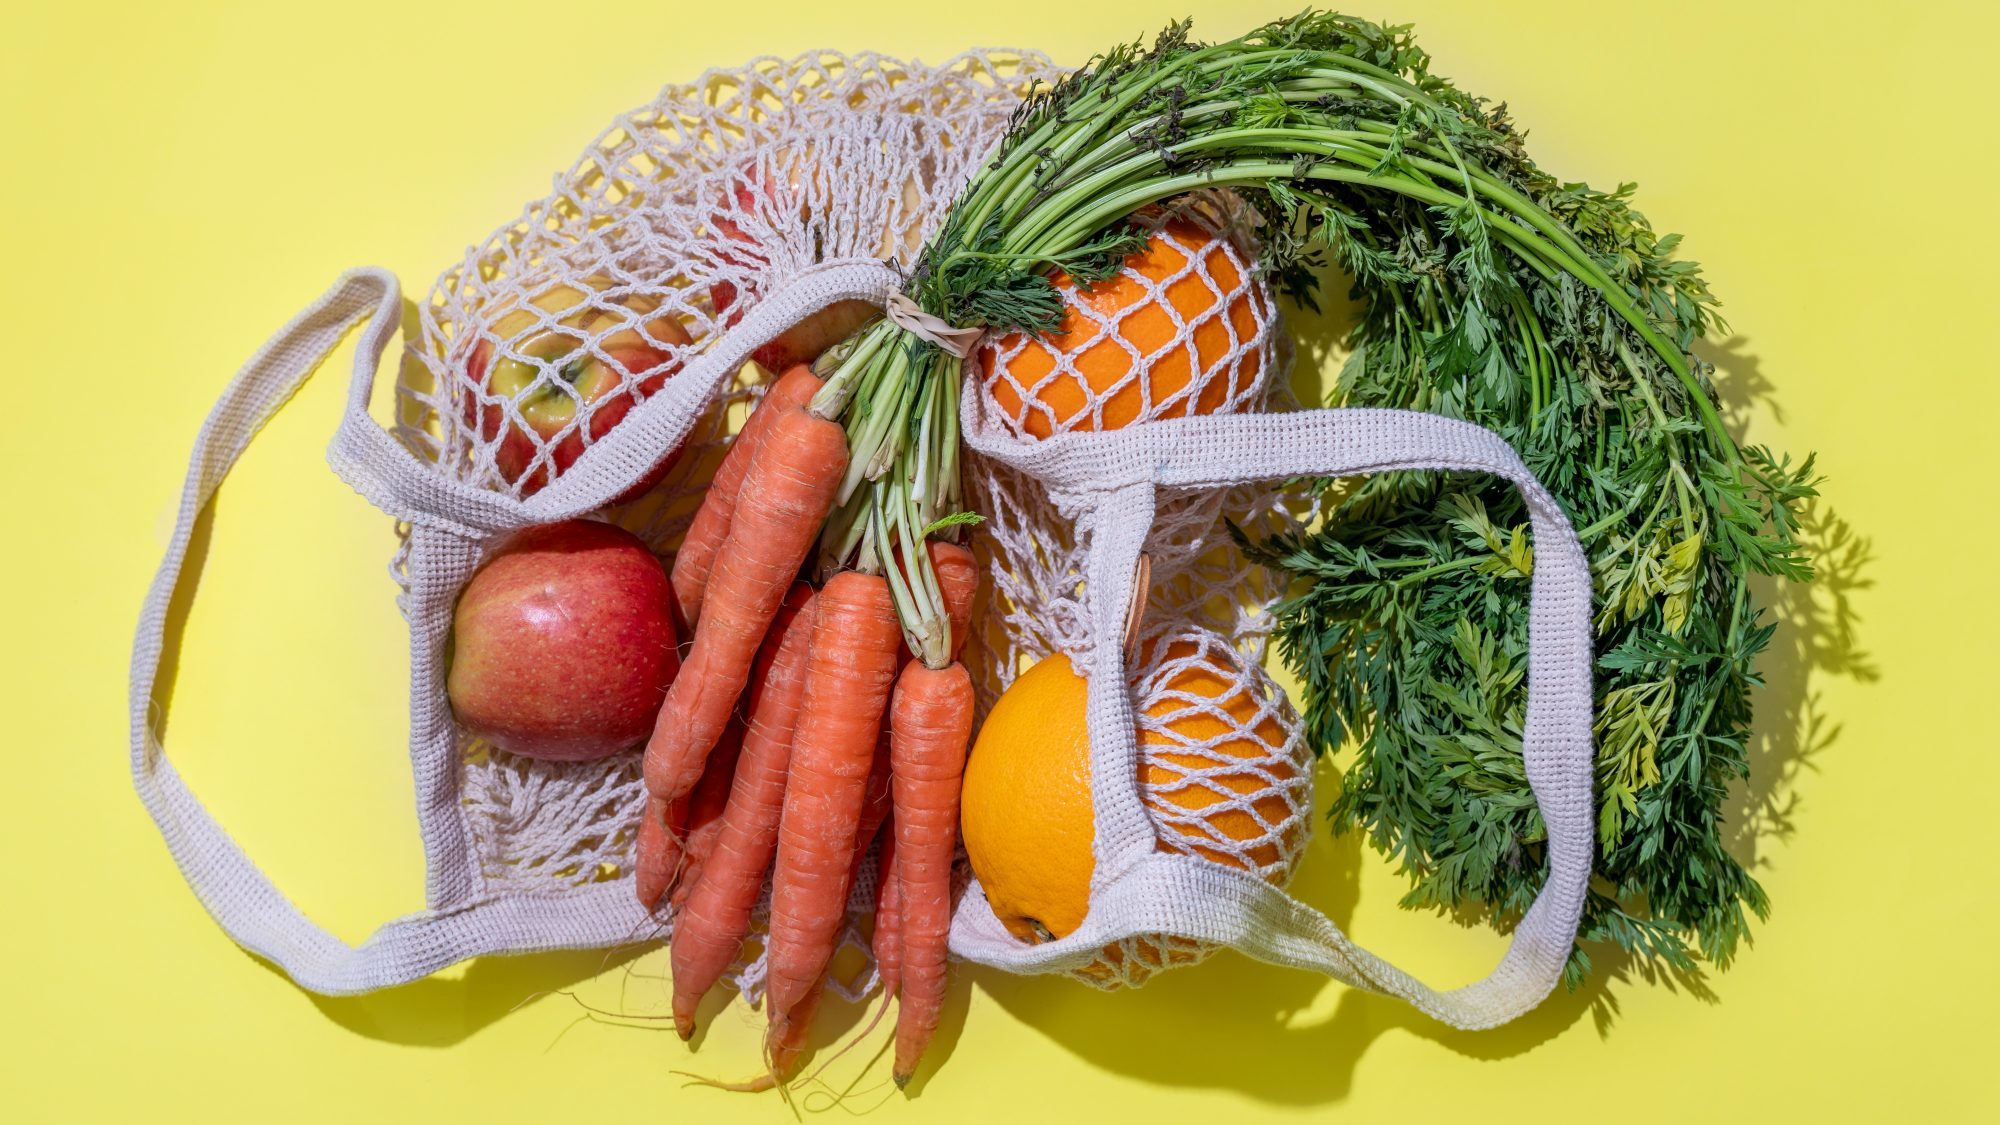 groceries in a mesh bag: grocery shop faster